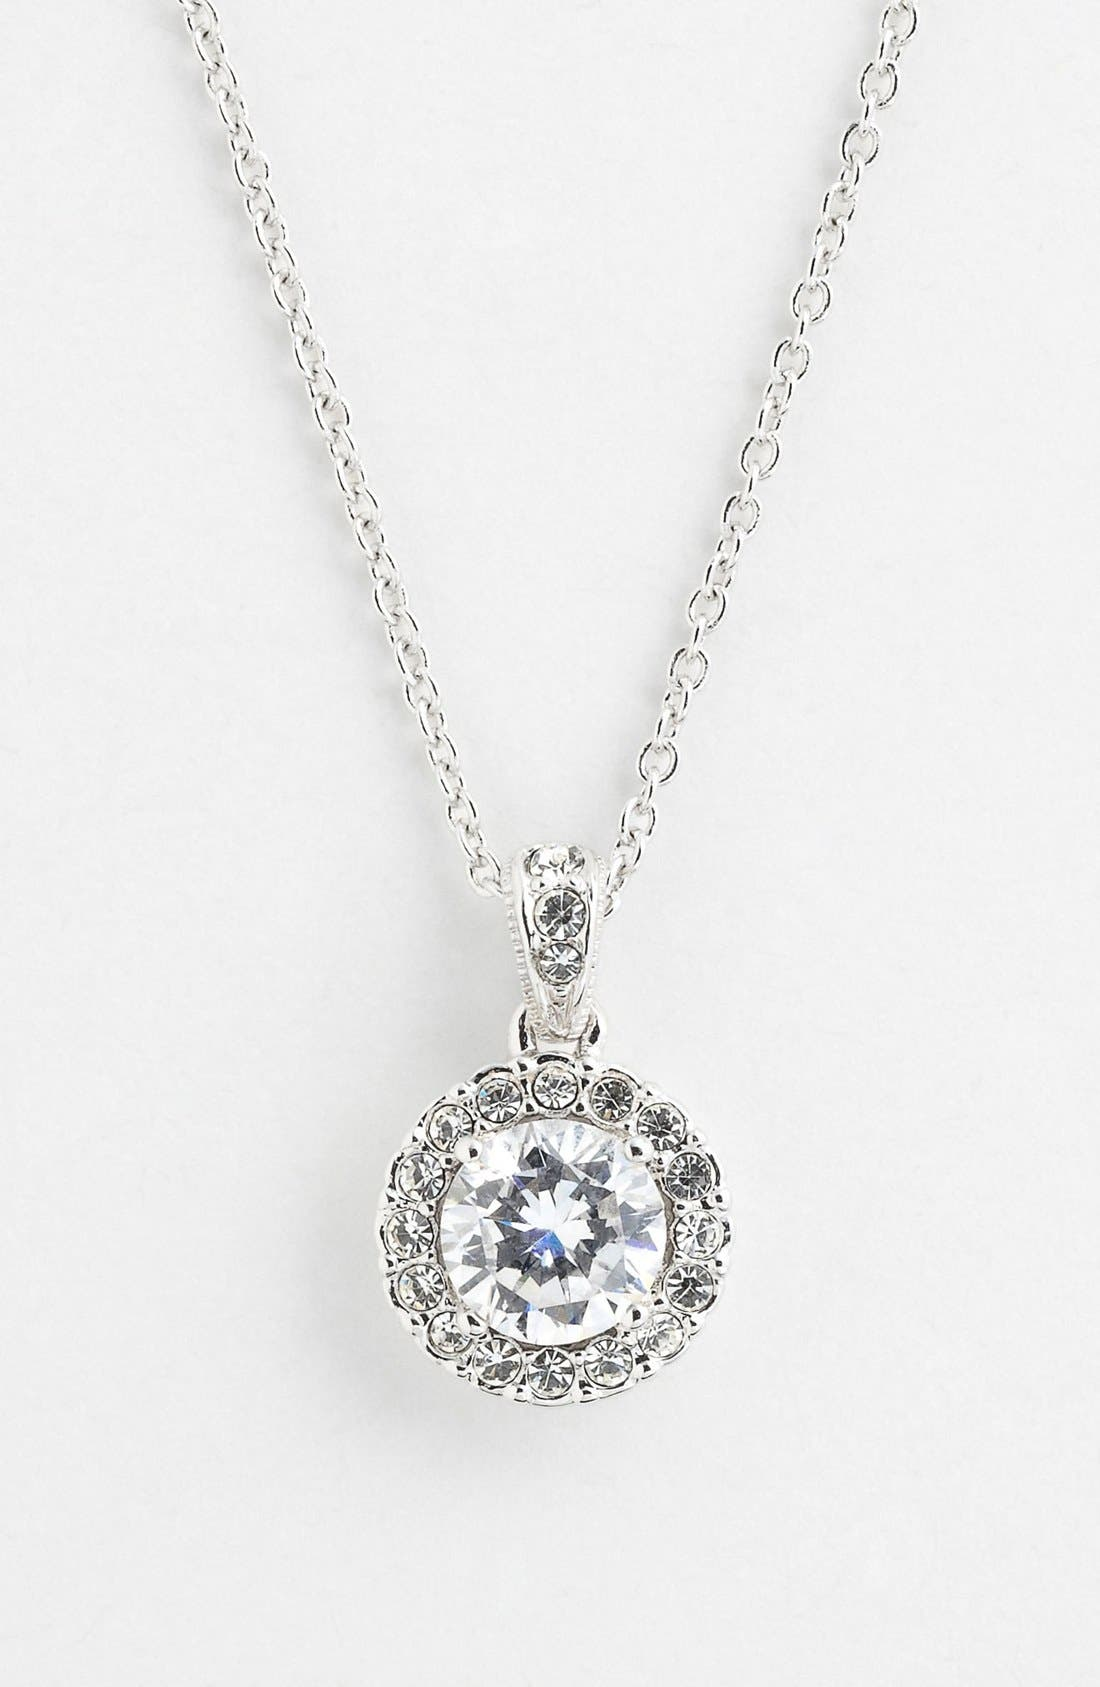 Main Image - Nadri Framed Round Cubic Zirconia Necklace (Nordstrom Exclusive)